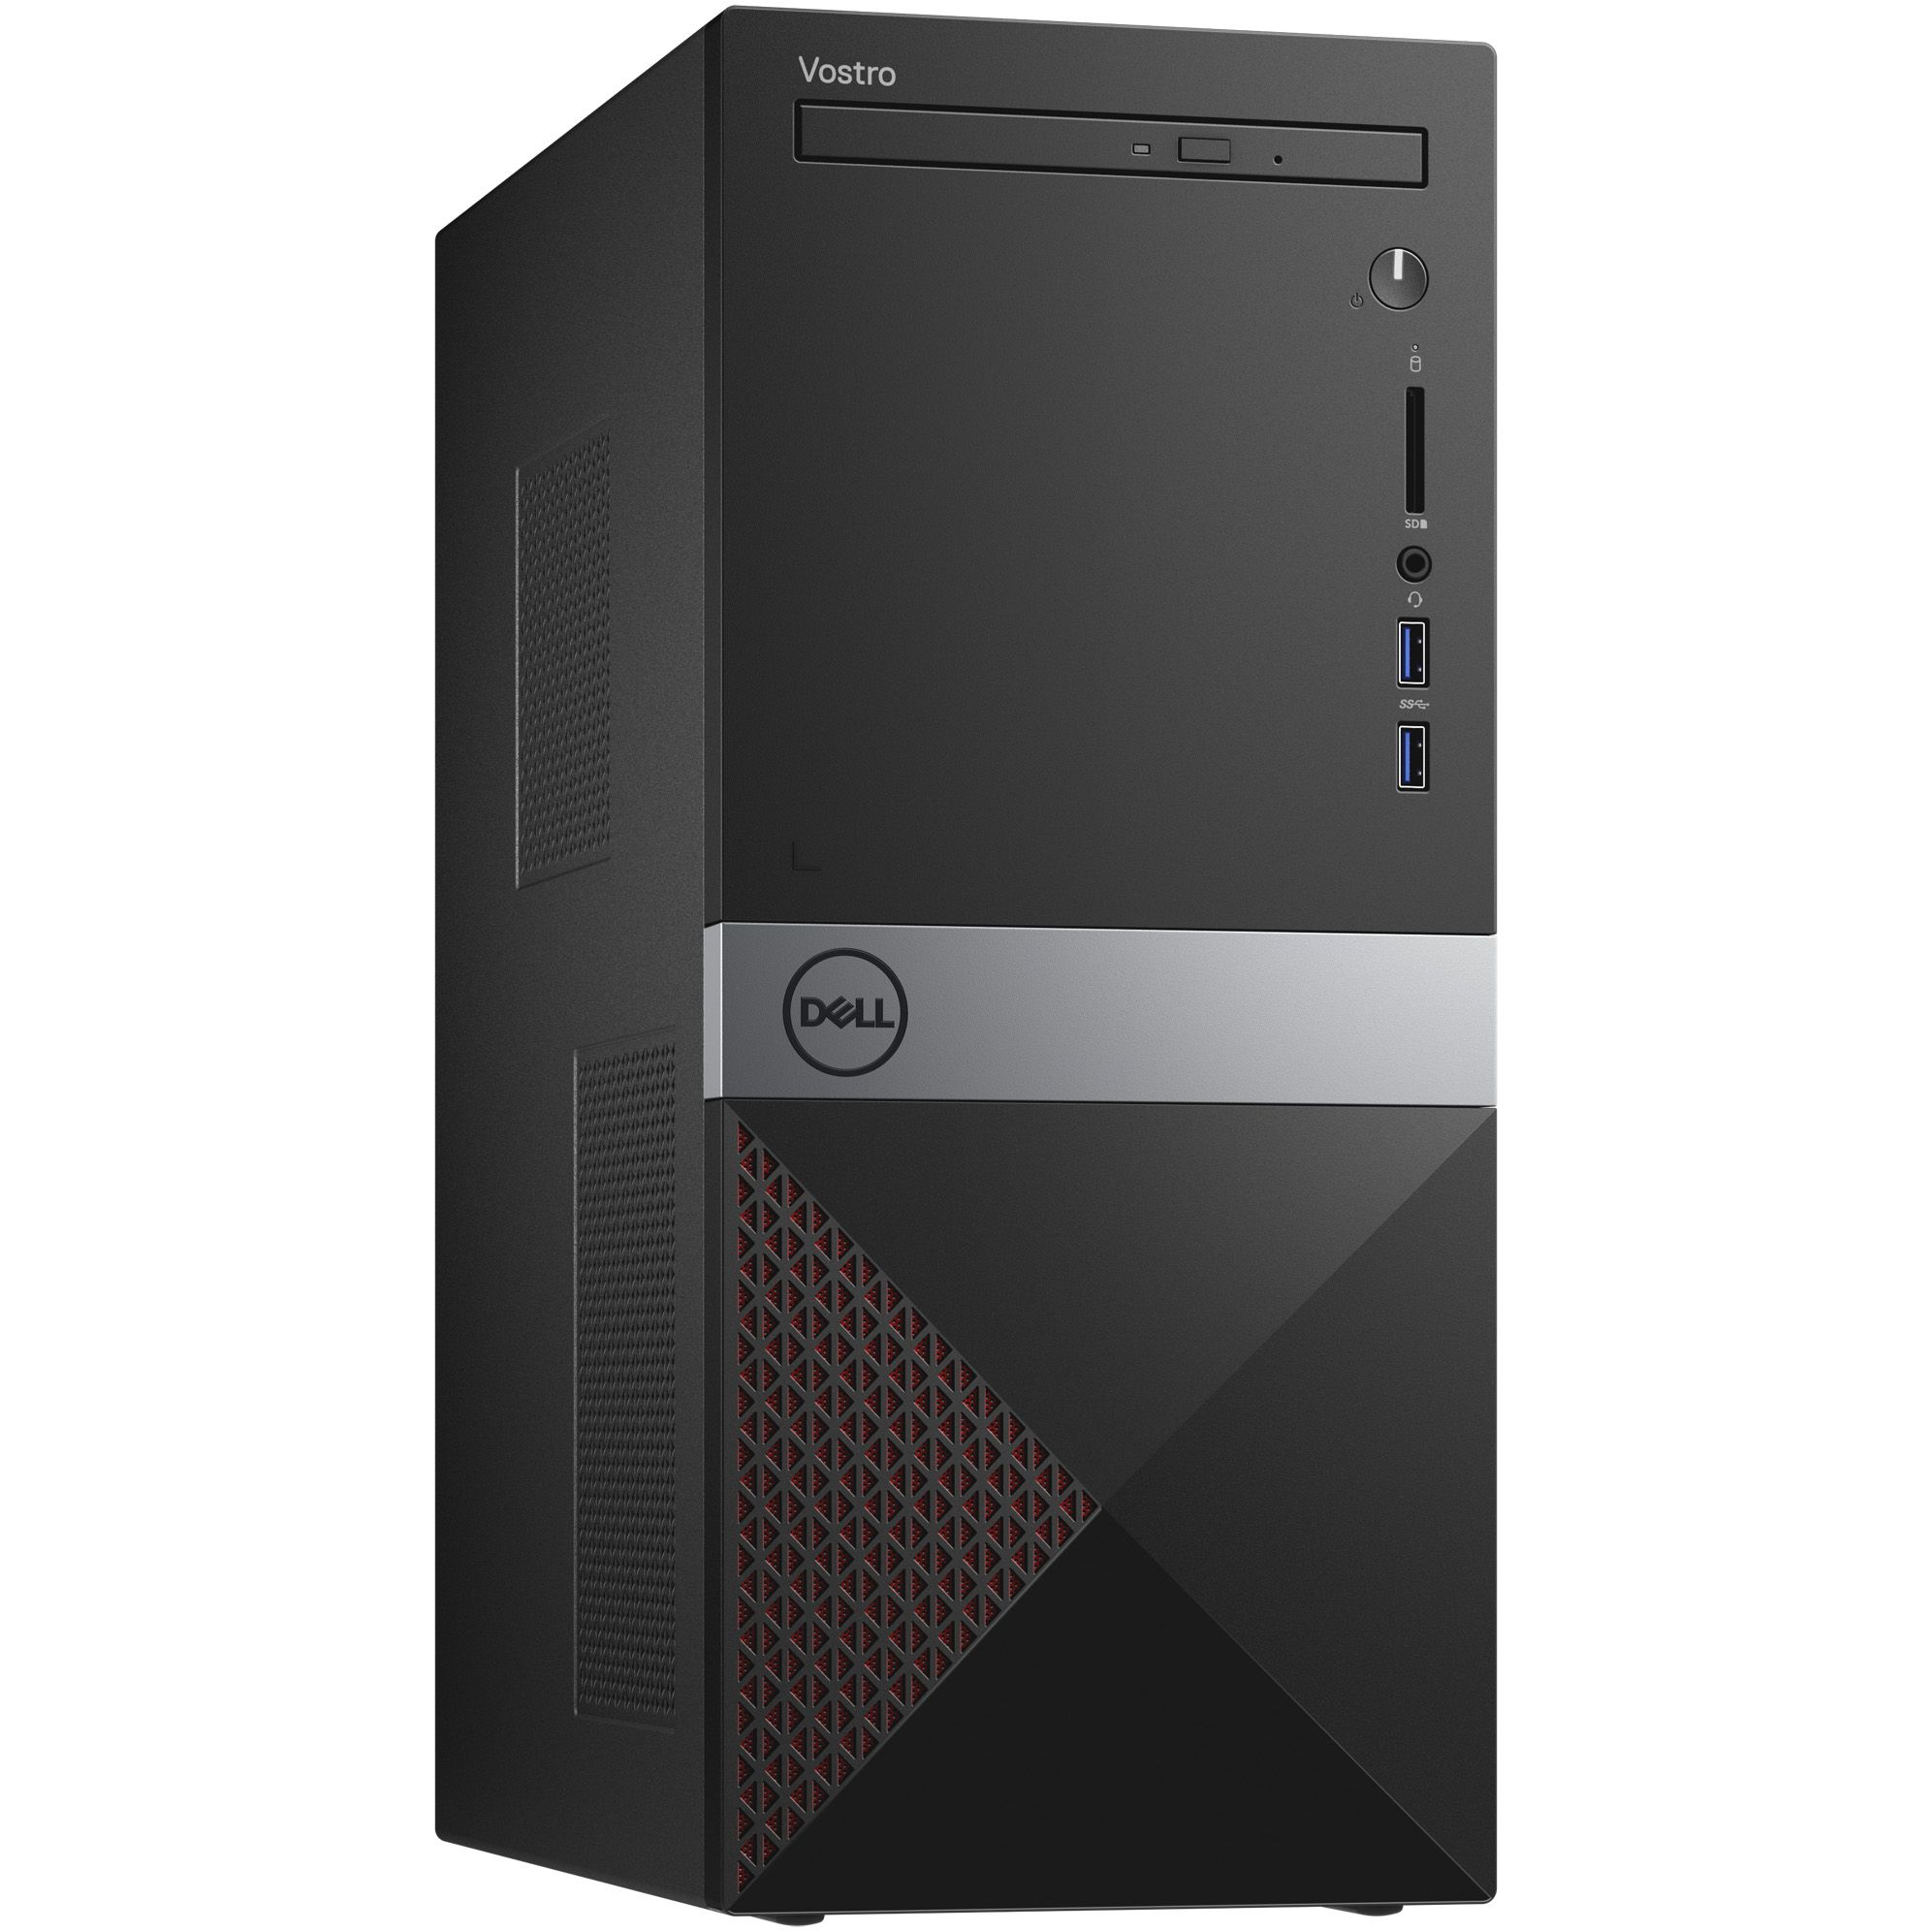 Sistem Brand Dell Vostro 3671 MT Intel Core i5-9400 RAM 8GB HDD 1TB Windows 10 Pro